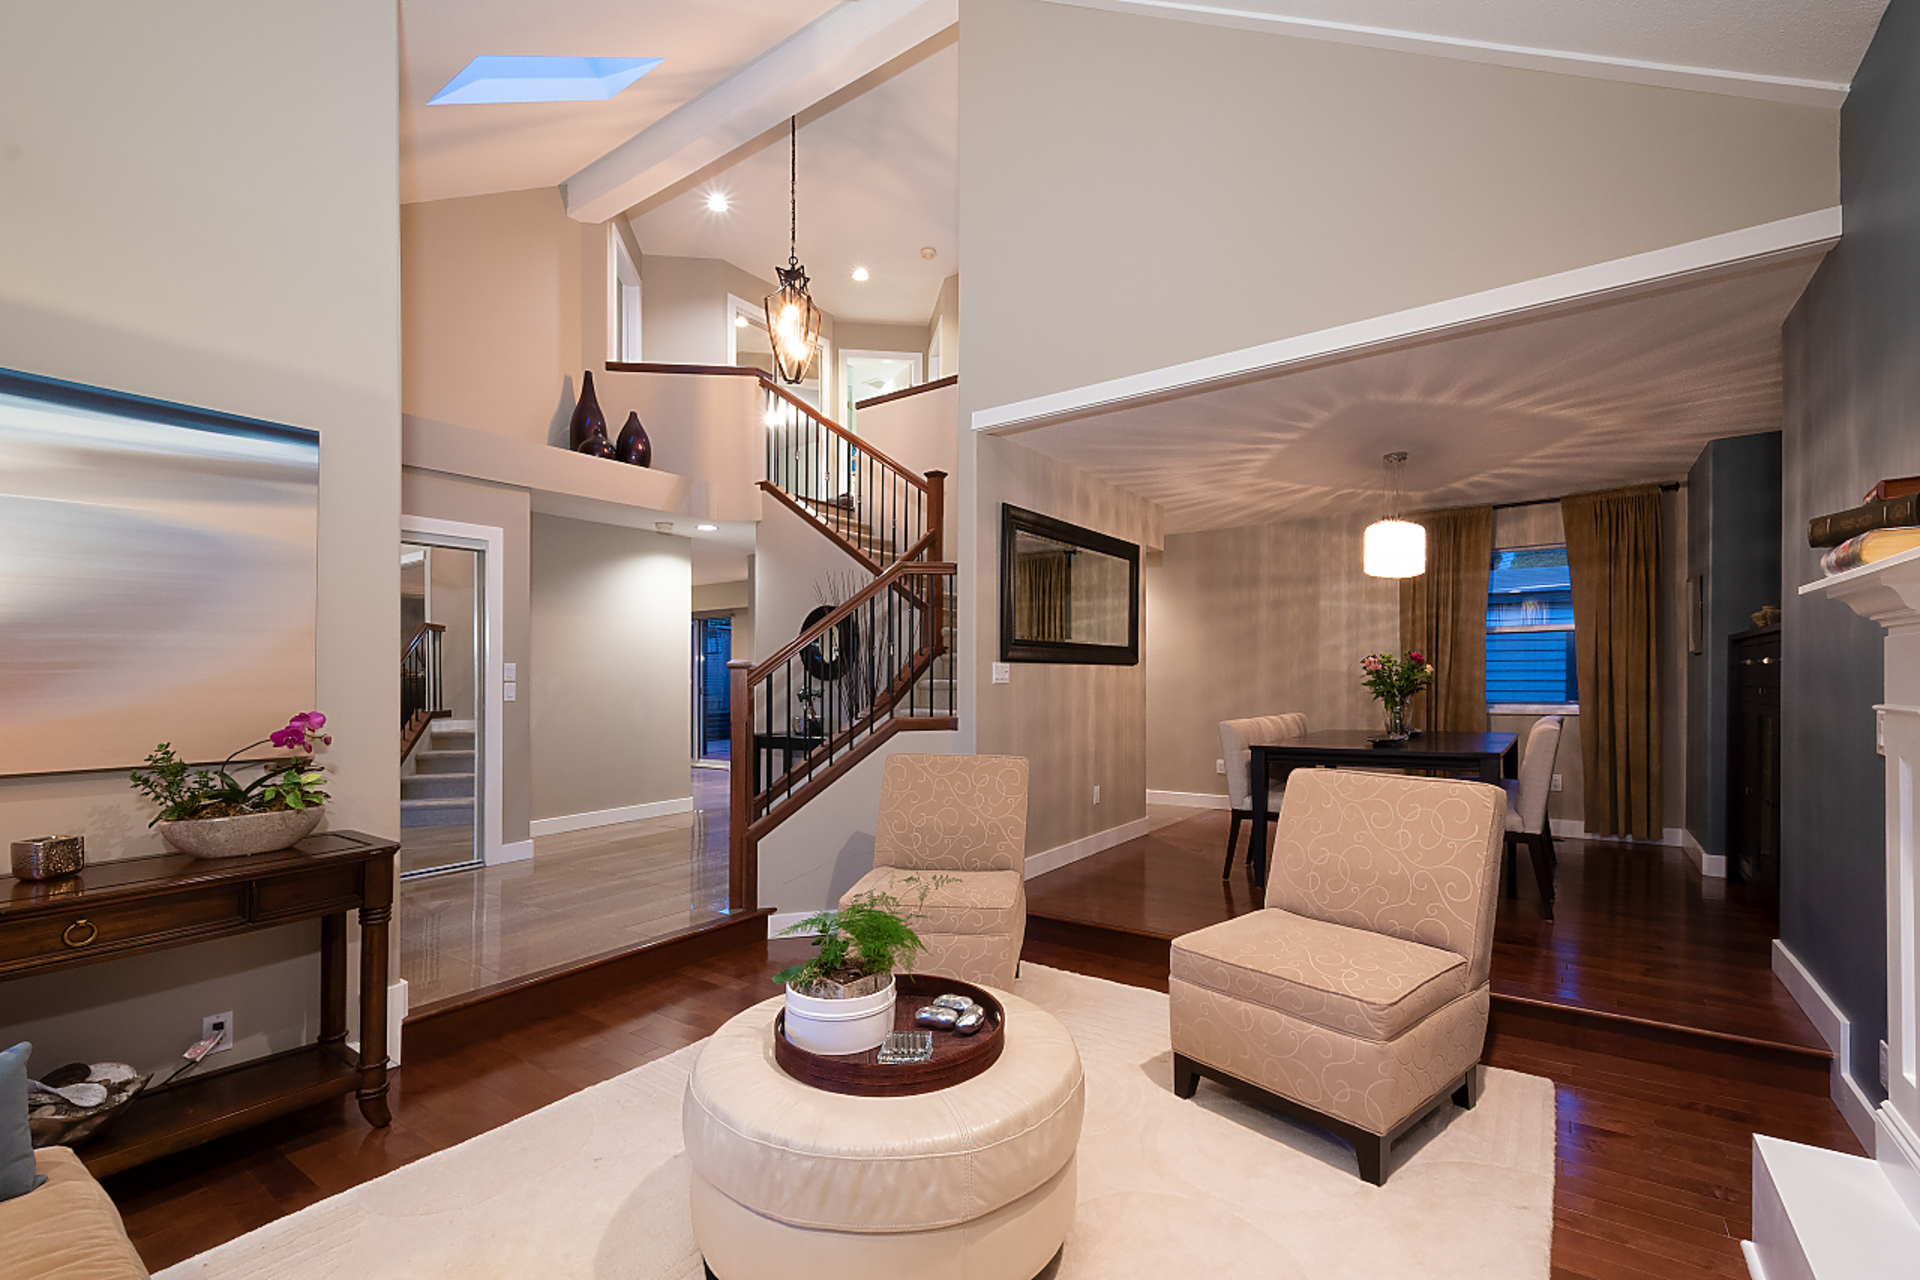 007a at 202 Ravine Drive, Heritage Mountain, Port Moody